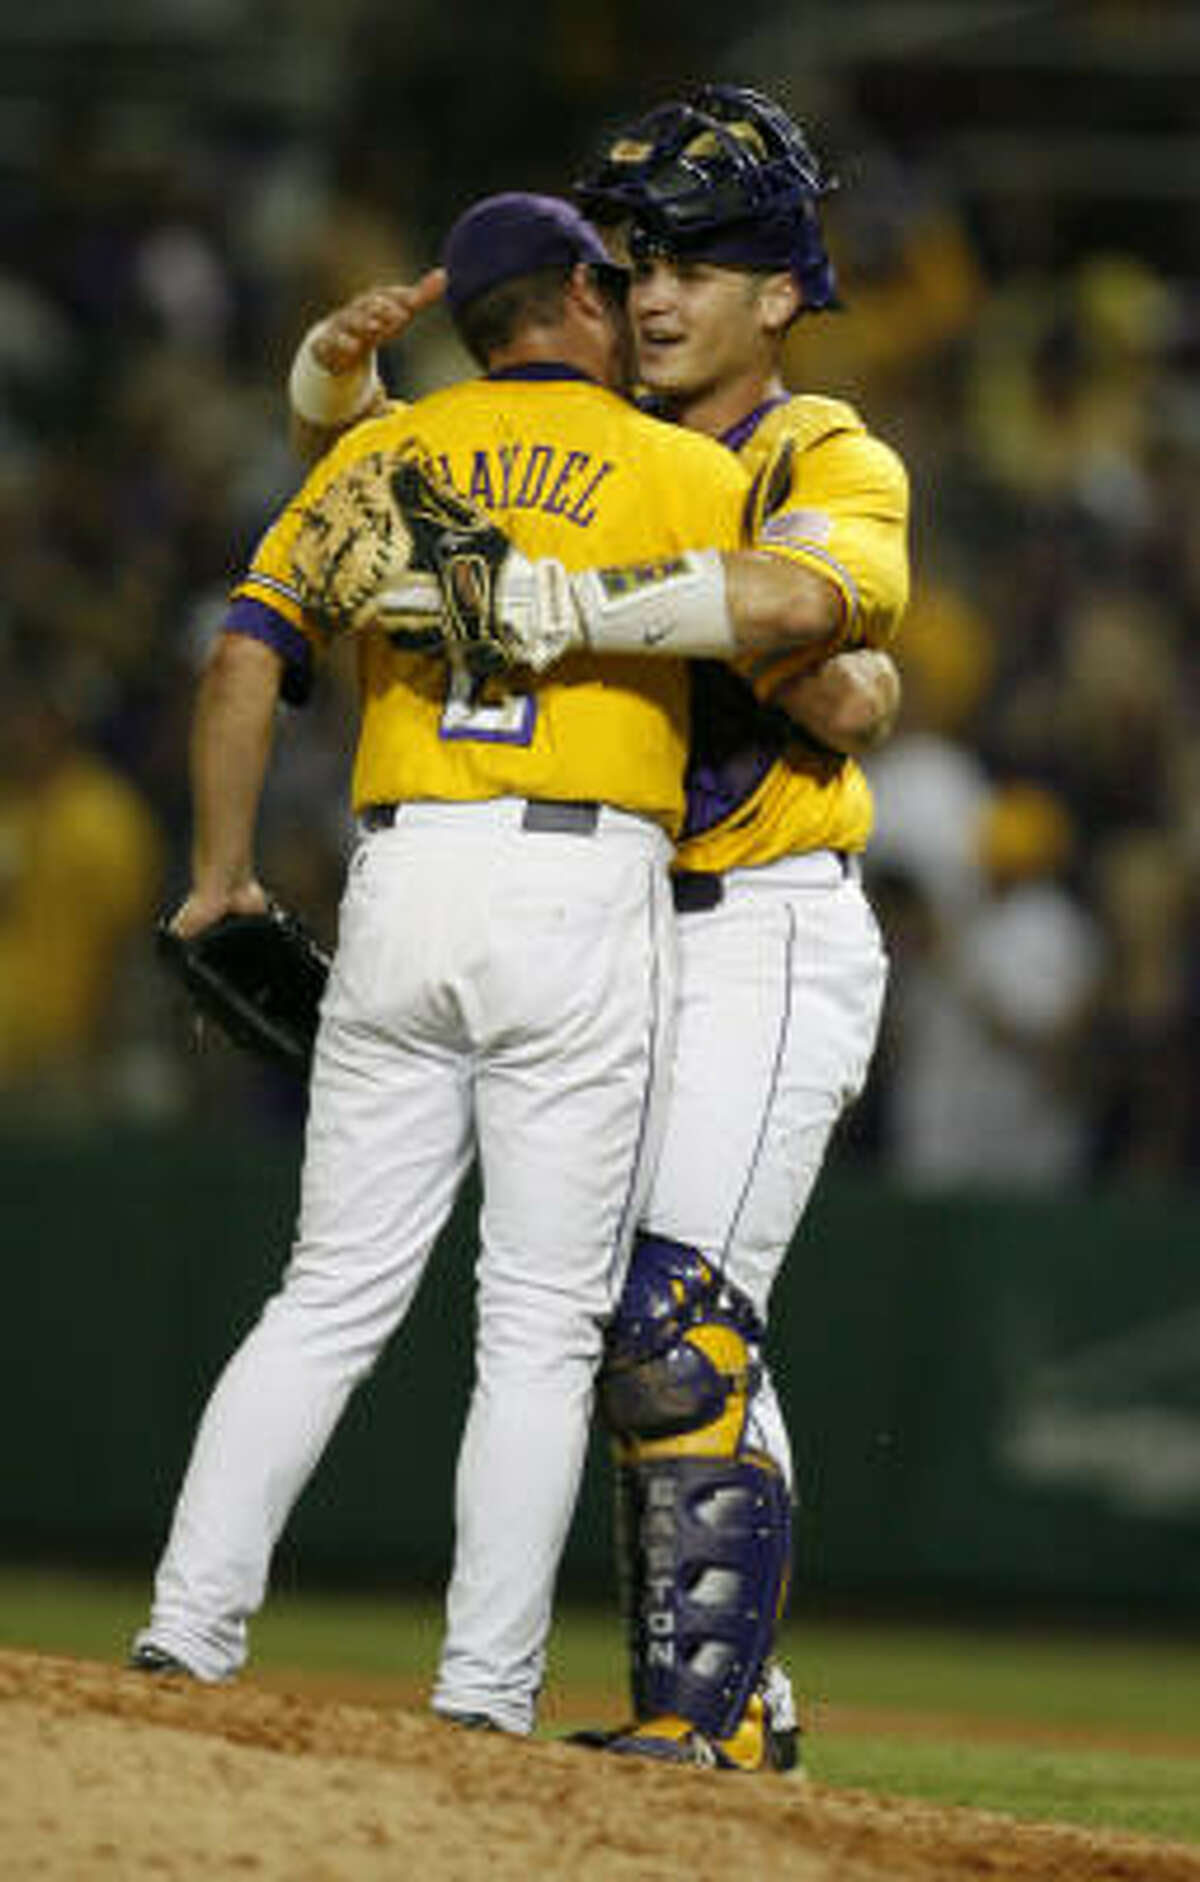 Baton Rouge (La.) Super Regional Game 1: LSU 12, Rice 9 LSU's Buzzy Haydel celebrates with catcher Micah Gibbs after winning Game 1.